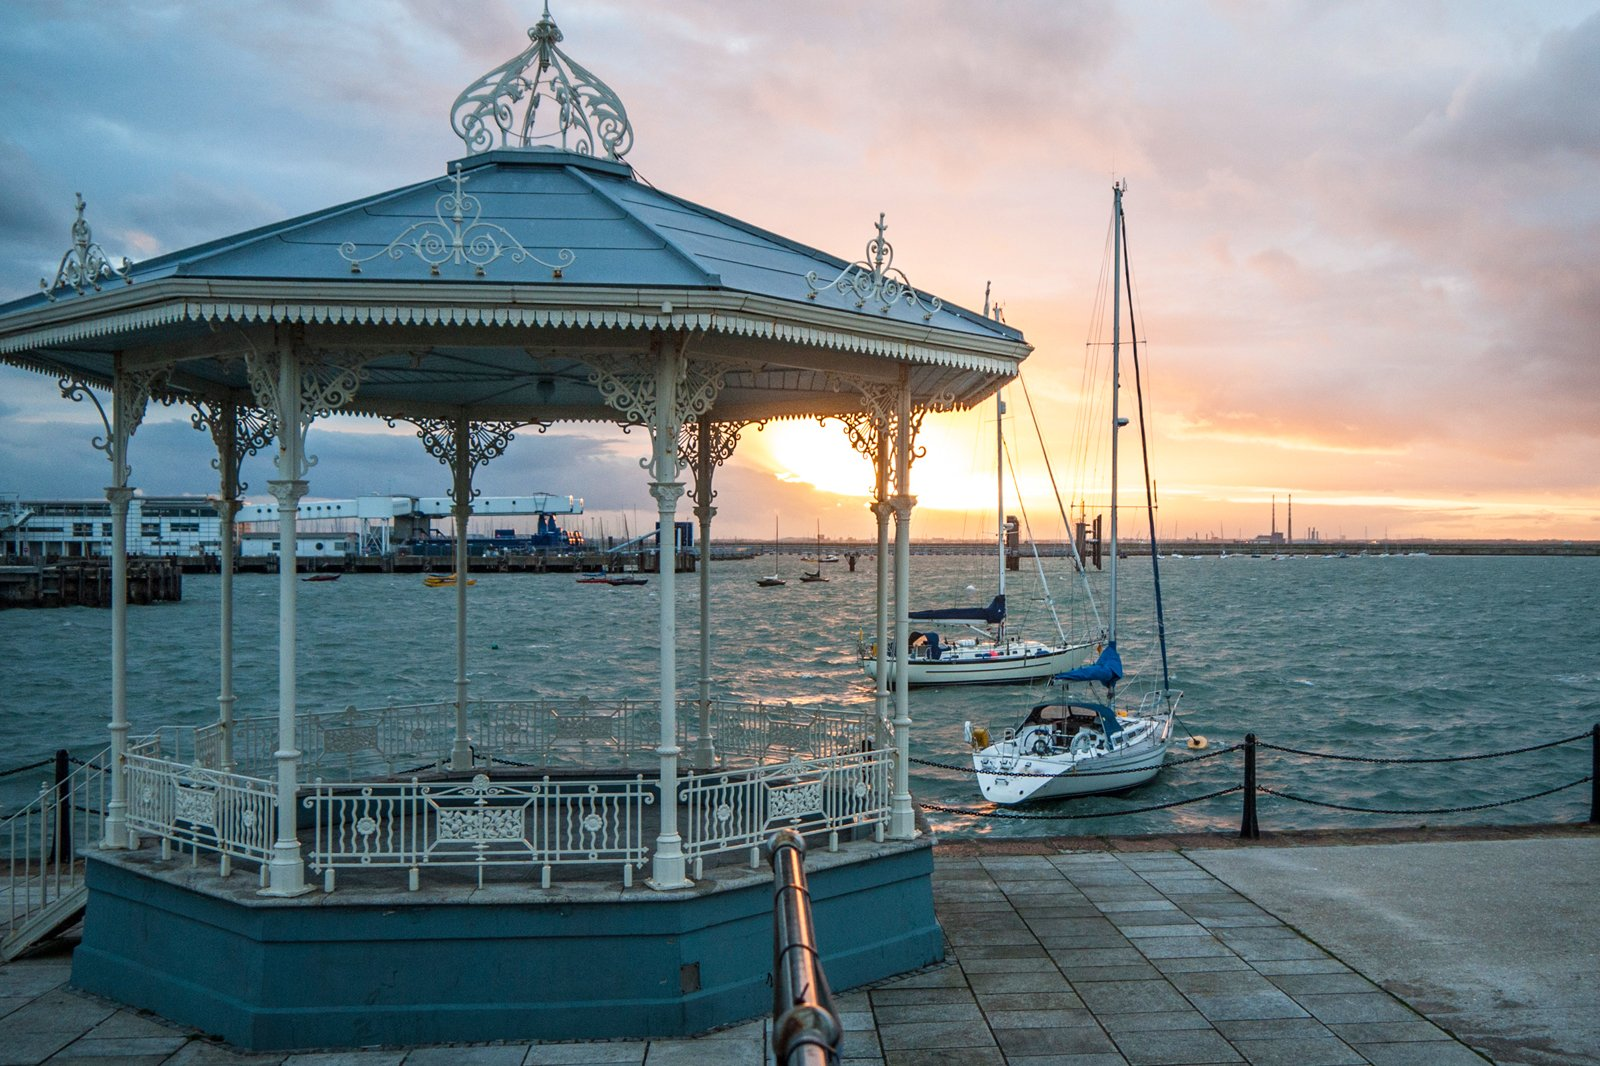 Locale Dn Laoghaire Harbour